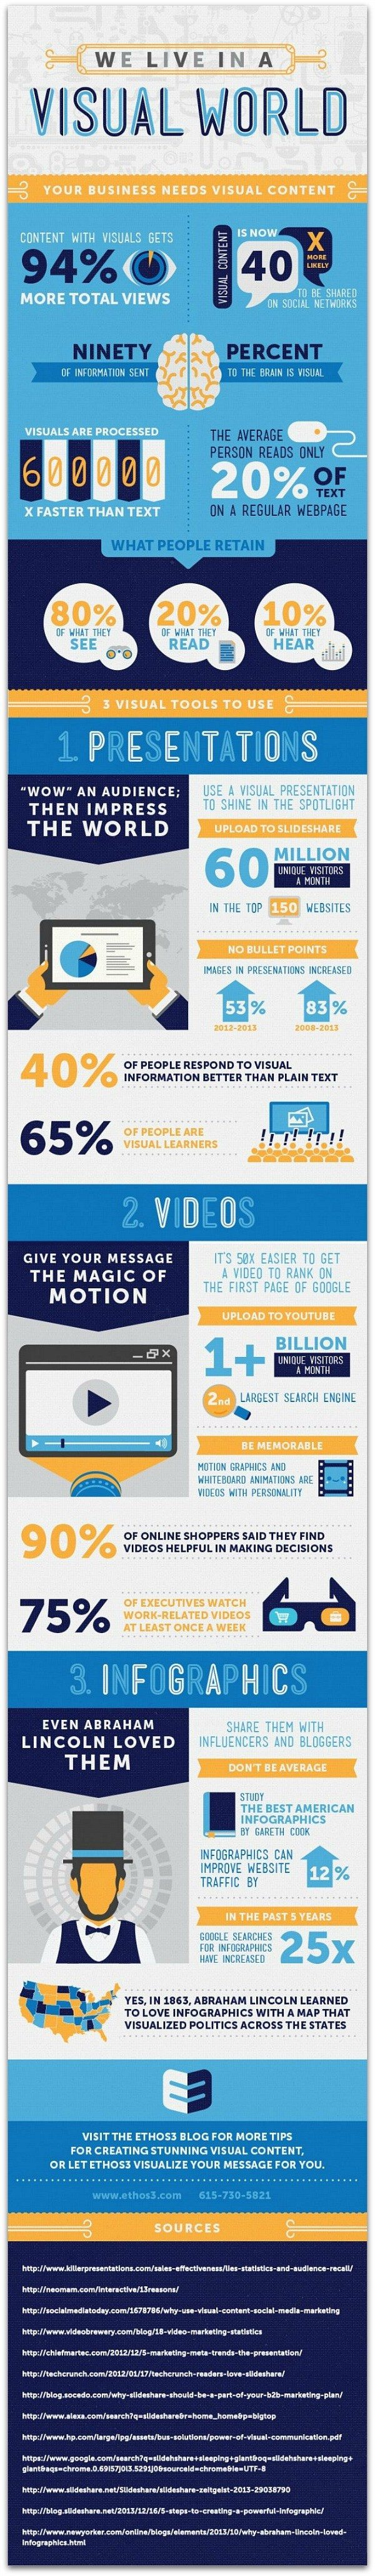 Ragan visual content infographic